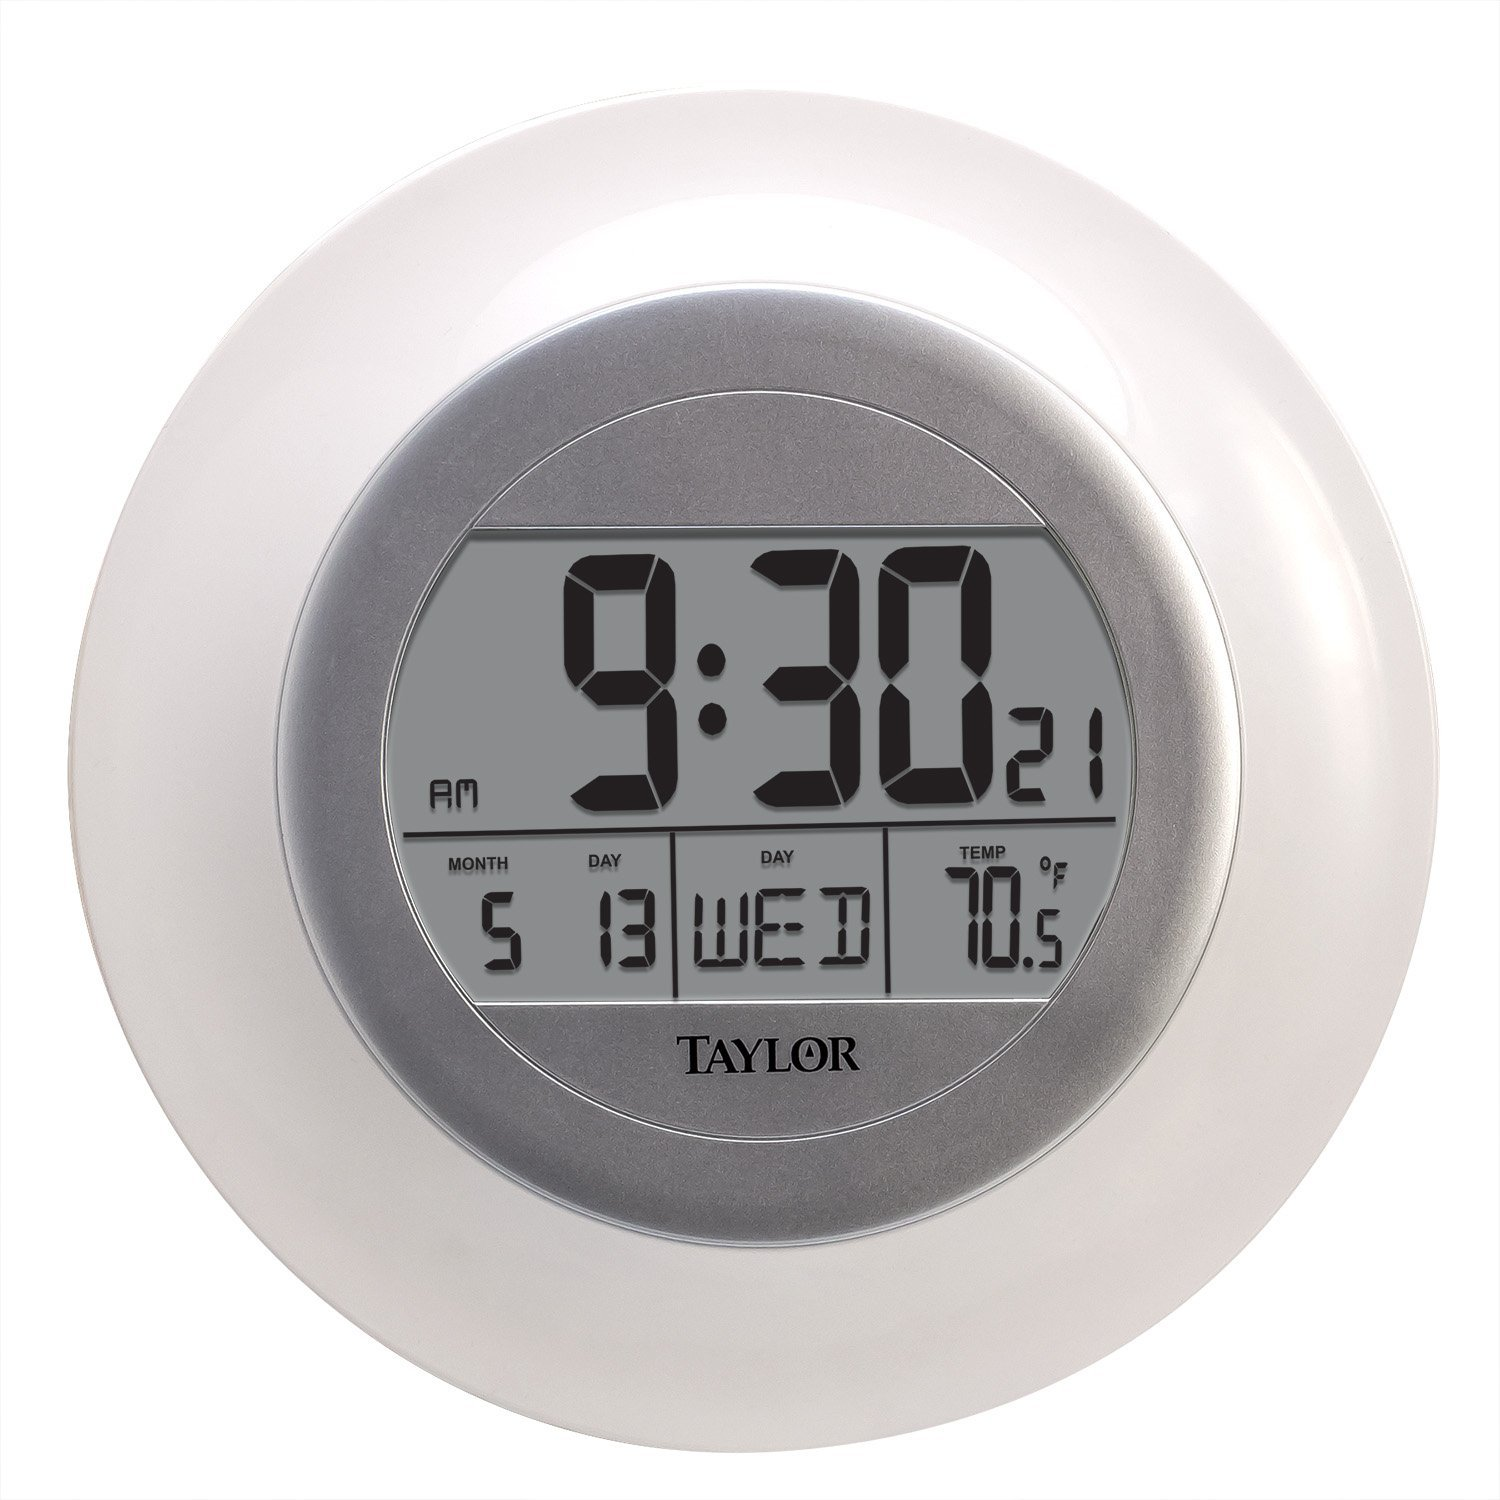 Taylor Wireless Digital Atomic Wall Clock with Indoor Temperature Taylor Precision Products 1750